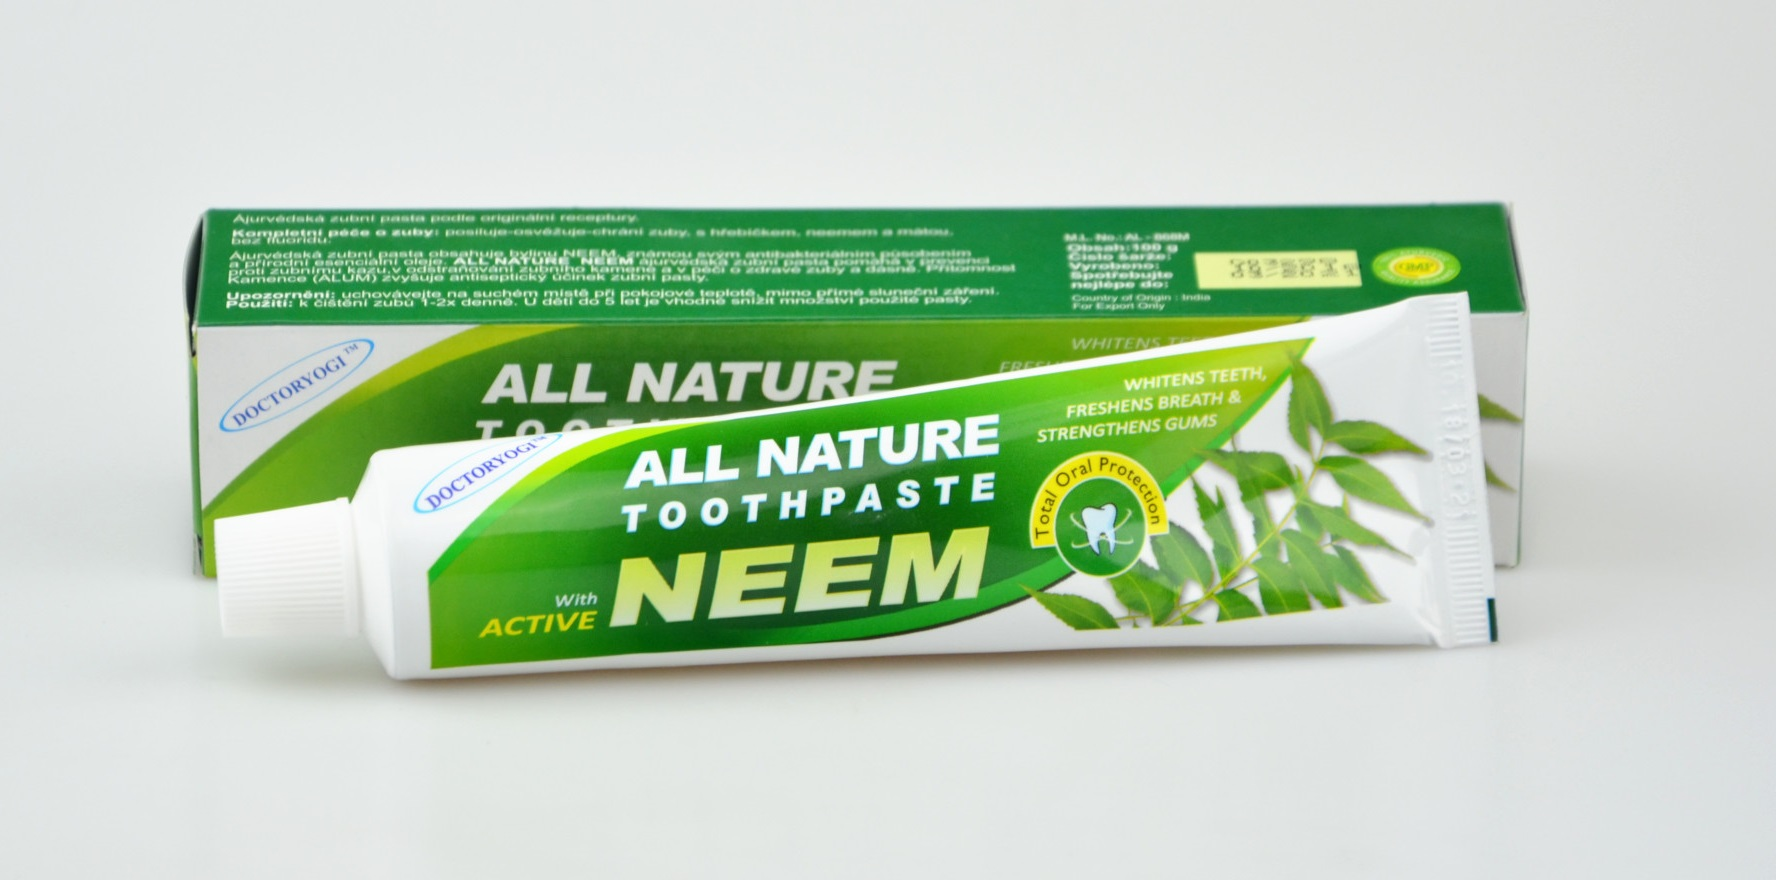 ALL NATURE NEEM - zubní pasta 100g